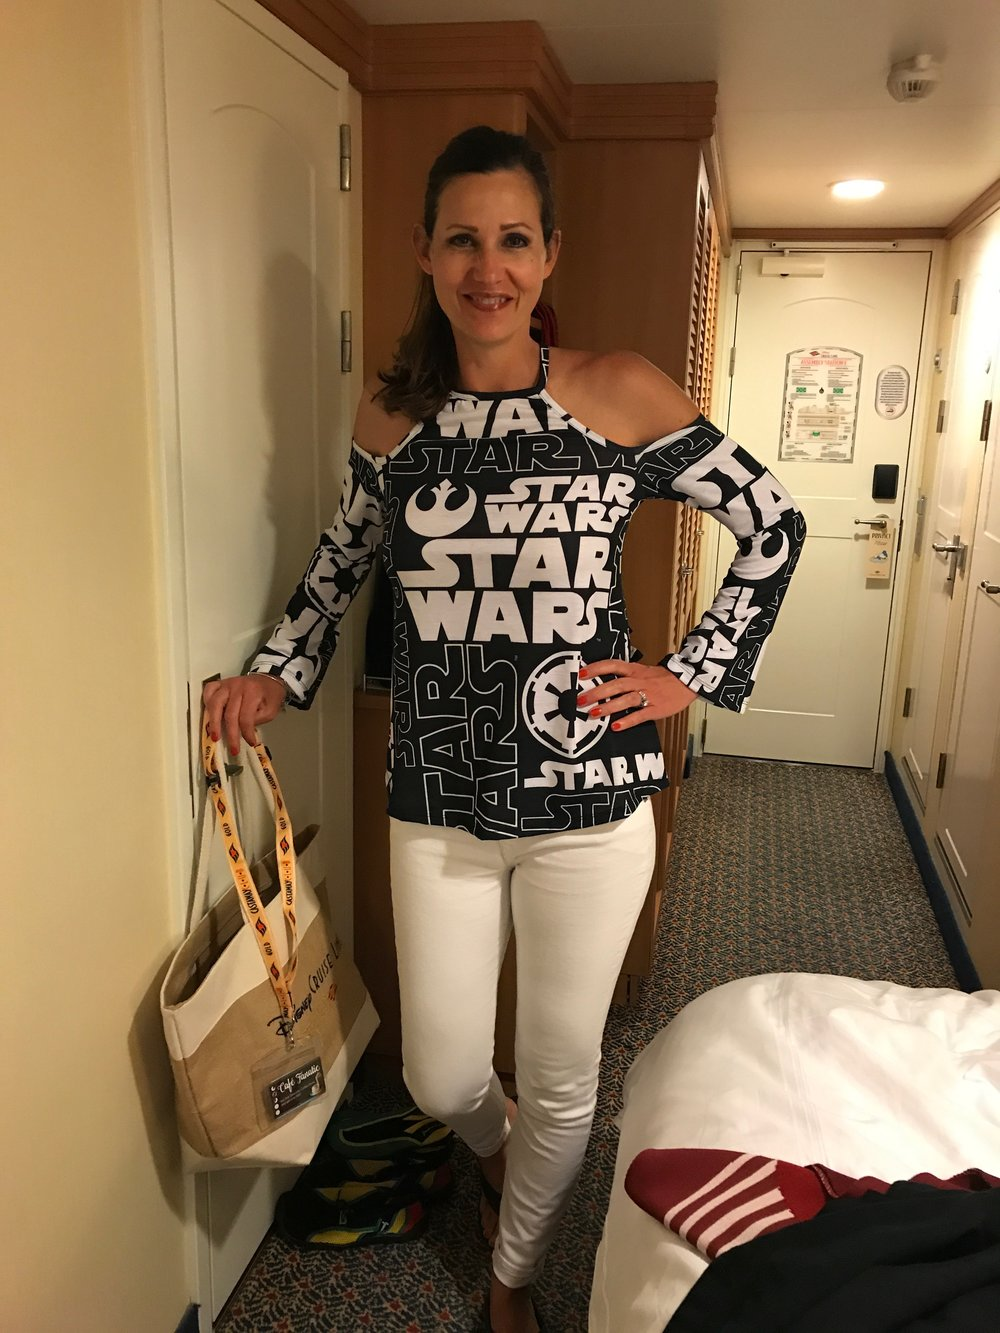 Mrs. Douggiestyle creating a disturbance in the Force!